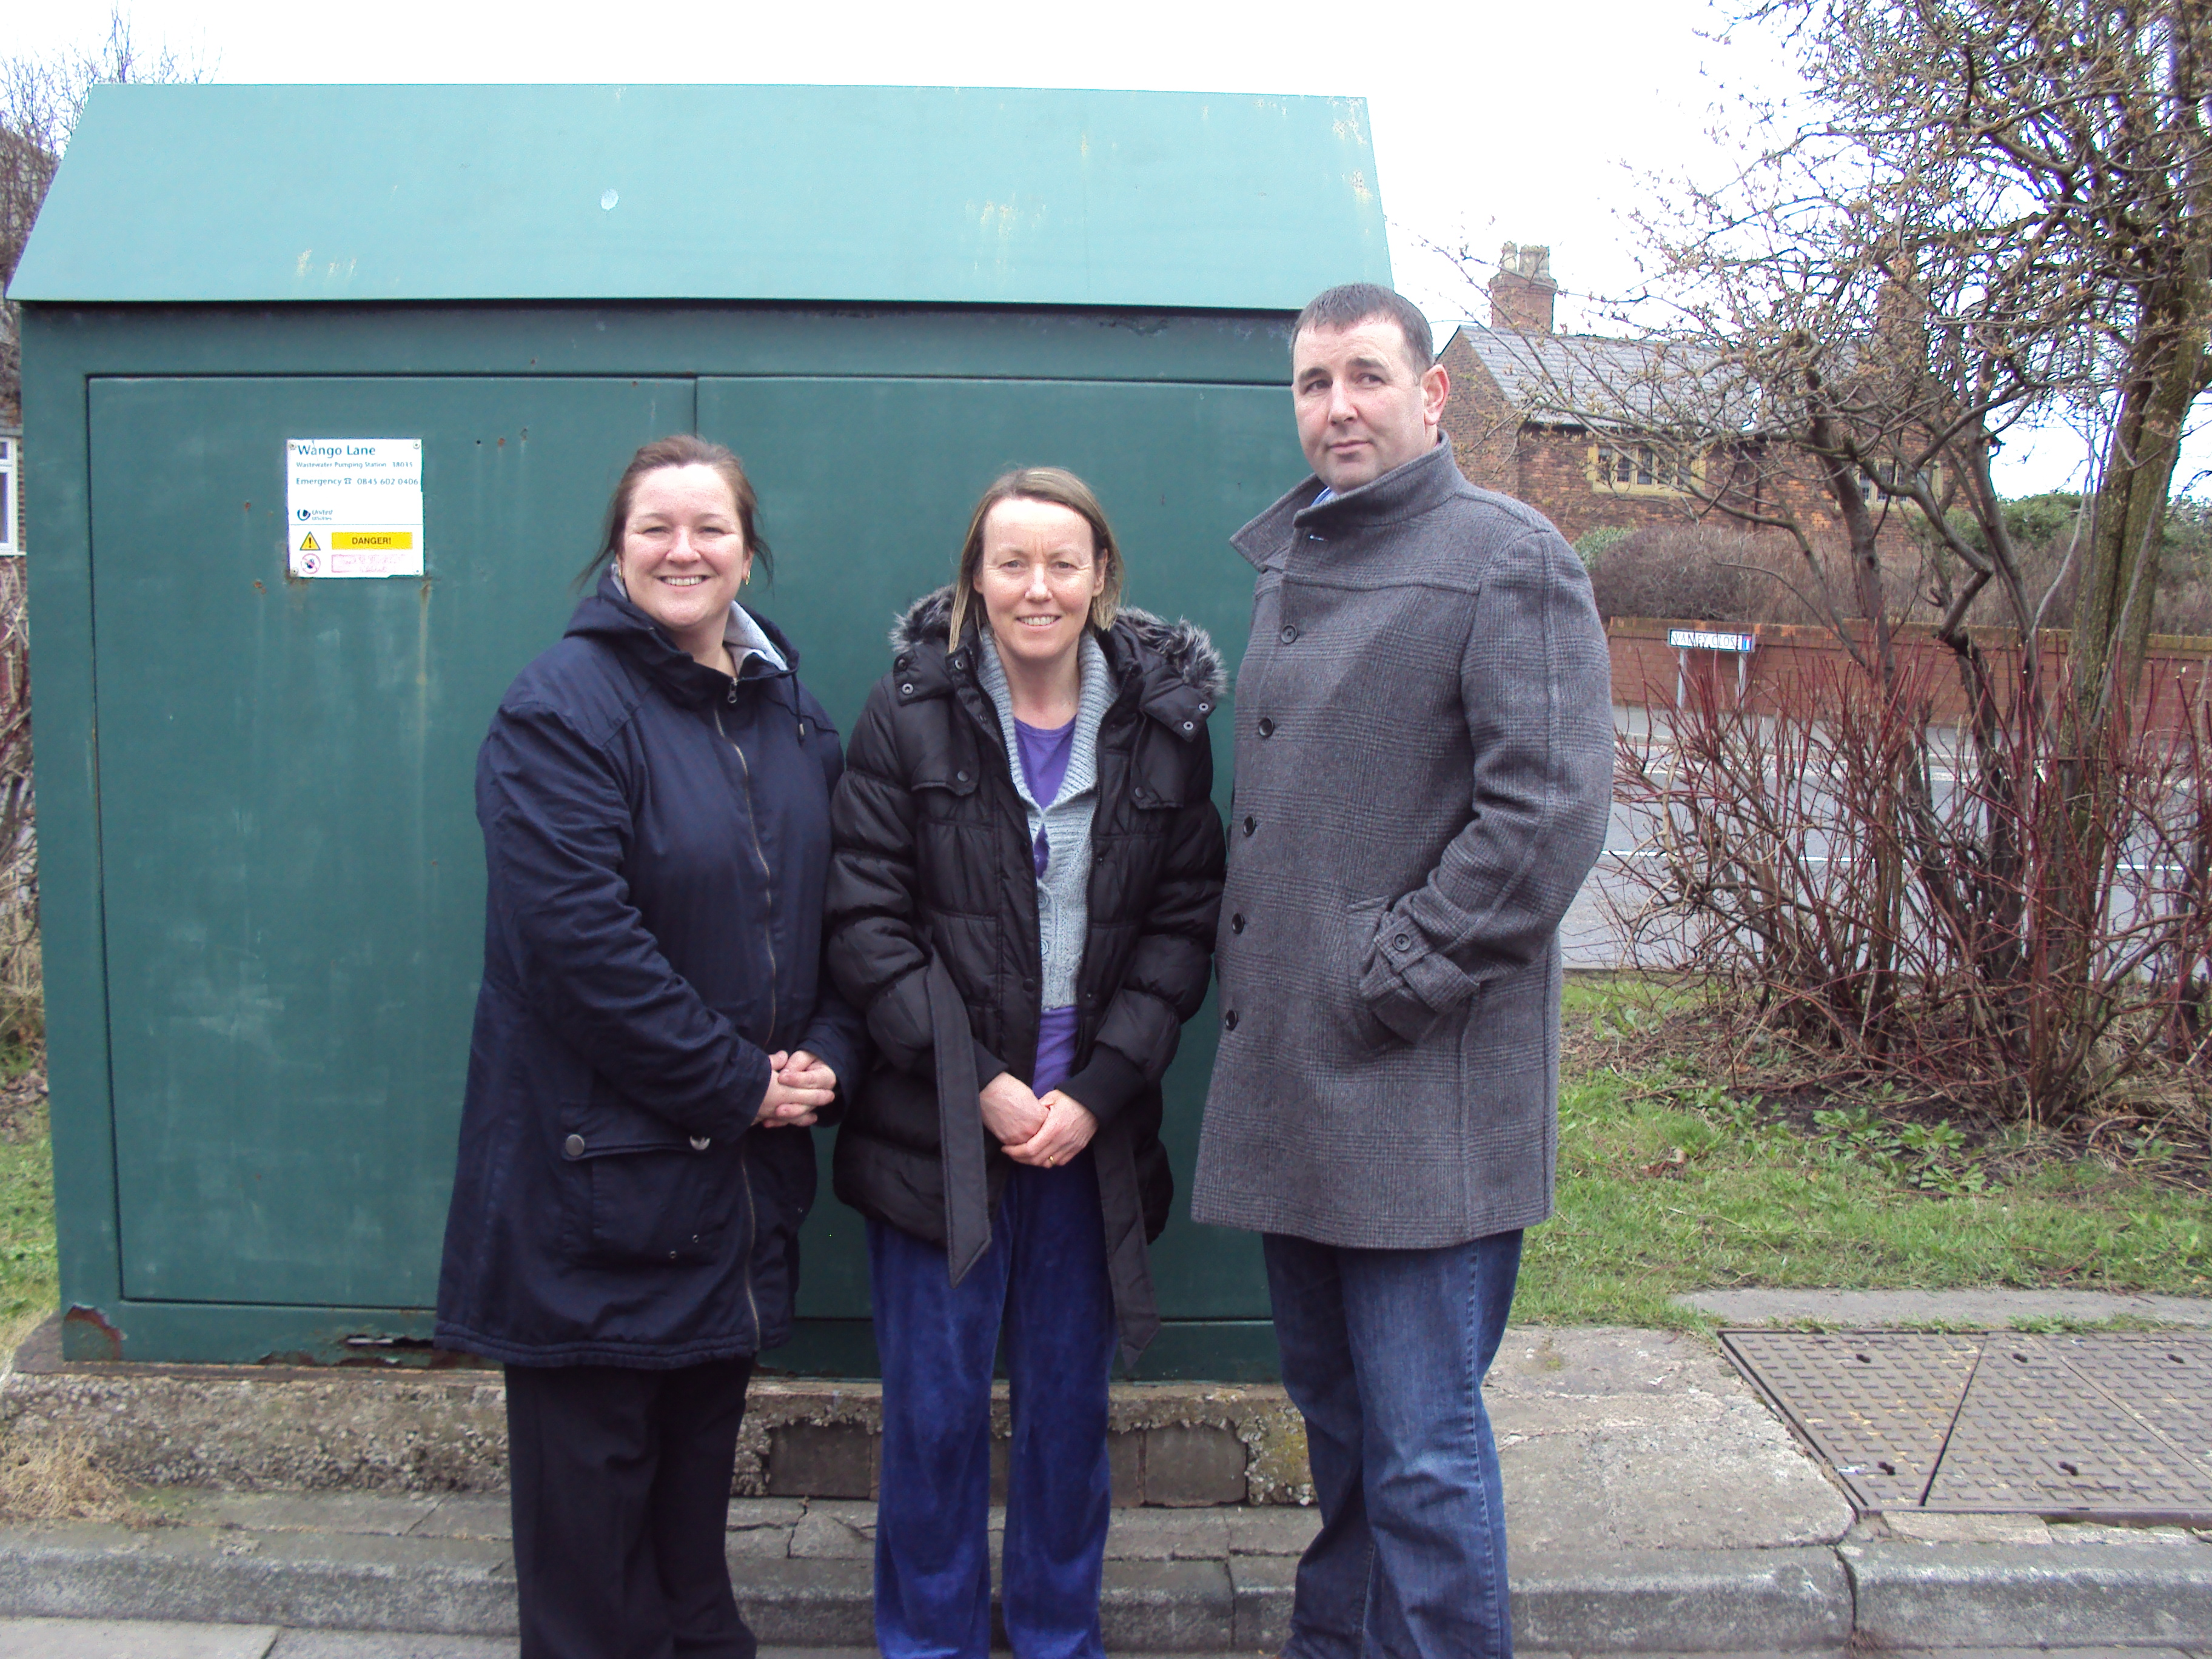 Aintree Labour Action Team leader Marion Atkinson and Molyneux Ward Labour councillor Tony Carr with Aintree mum Gillian Gill who reported the obscene graffiti to the Labour team